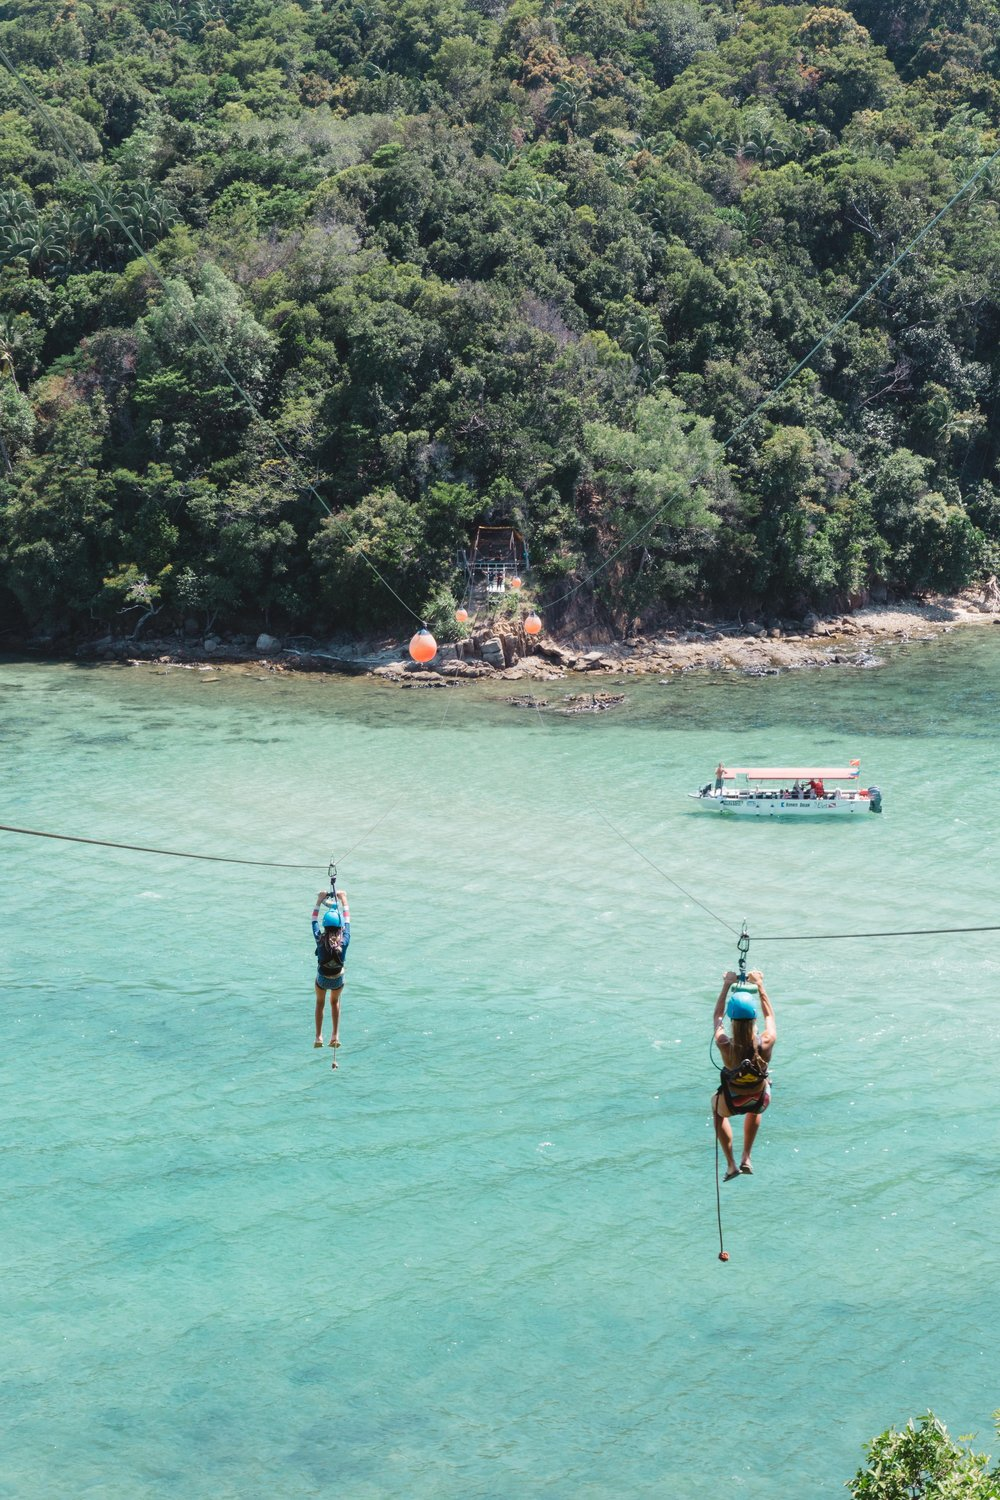 Our new preferred mode of transportation!!!!!! So much fun taking the longest island to island zip-line in the world, while enjoying a day trip snorkeling in Kota Kinabalu, Malaysia. What a pretty view to take in mid-fight!